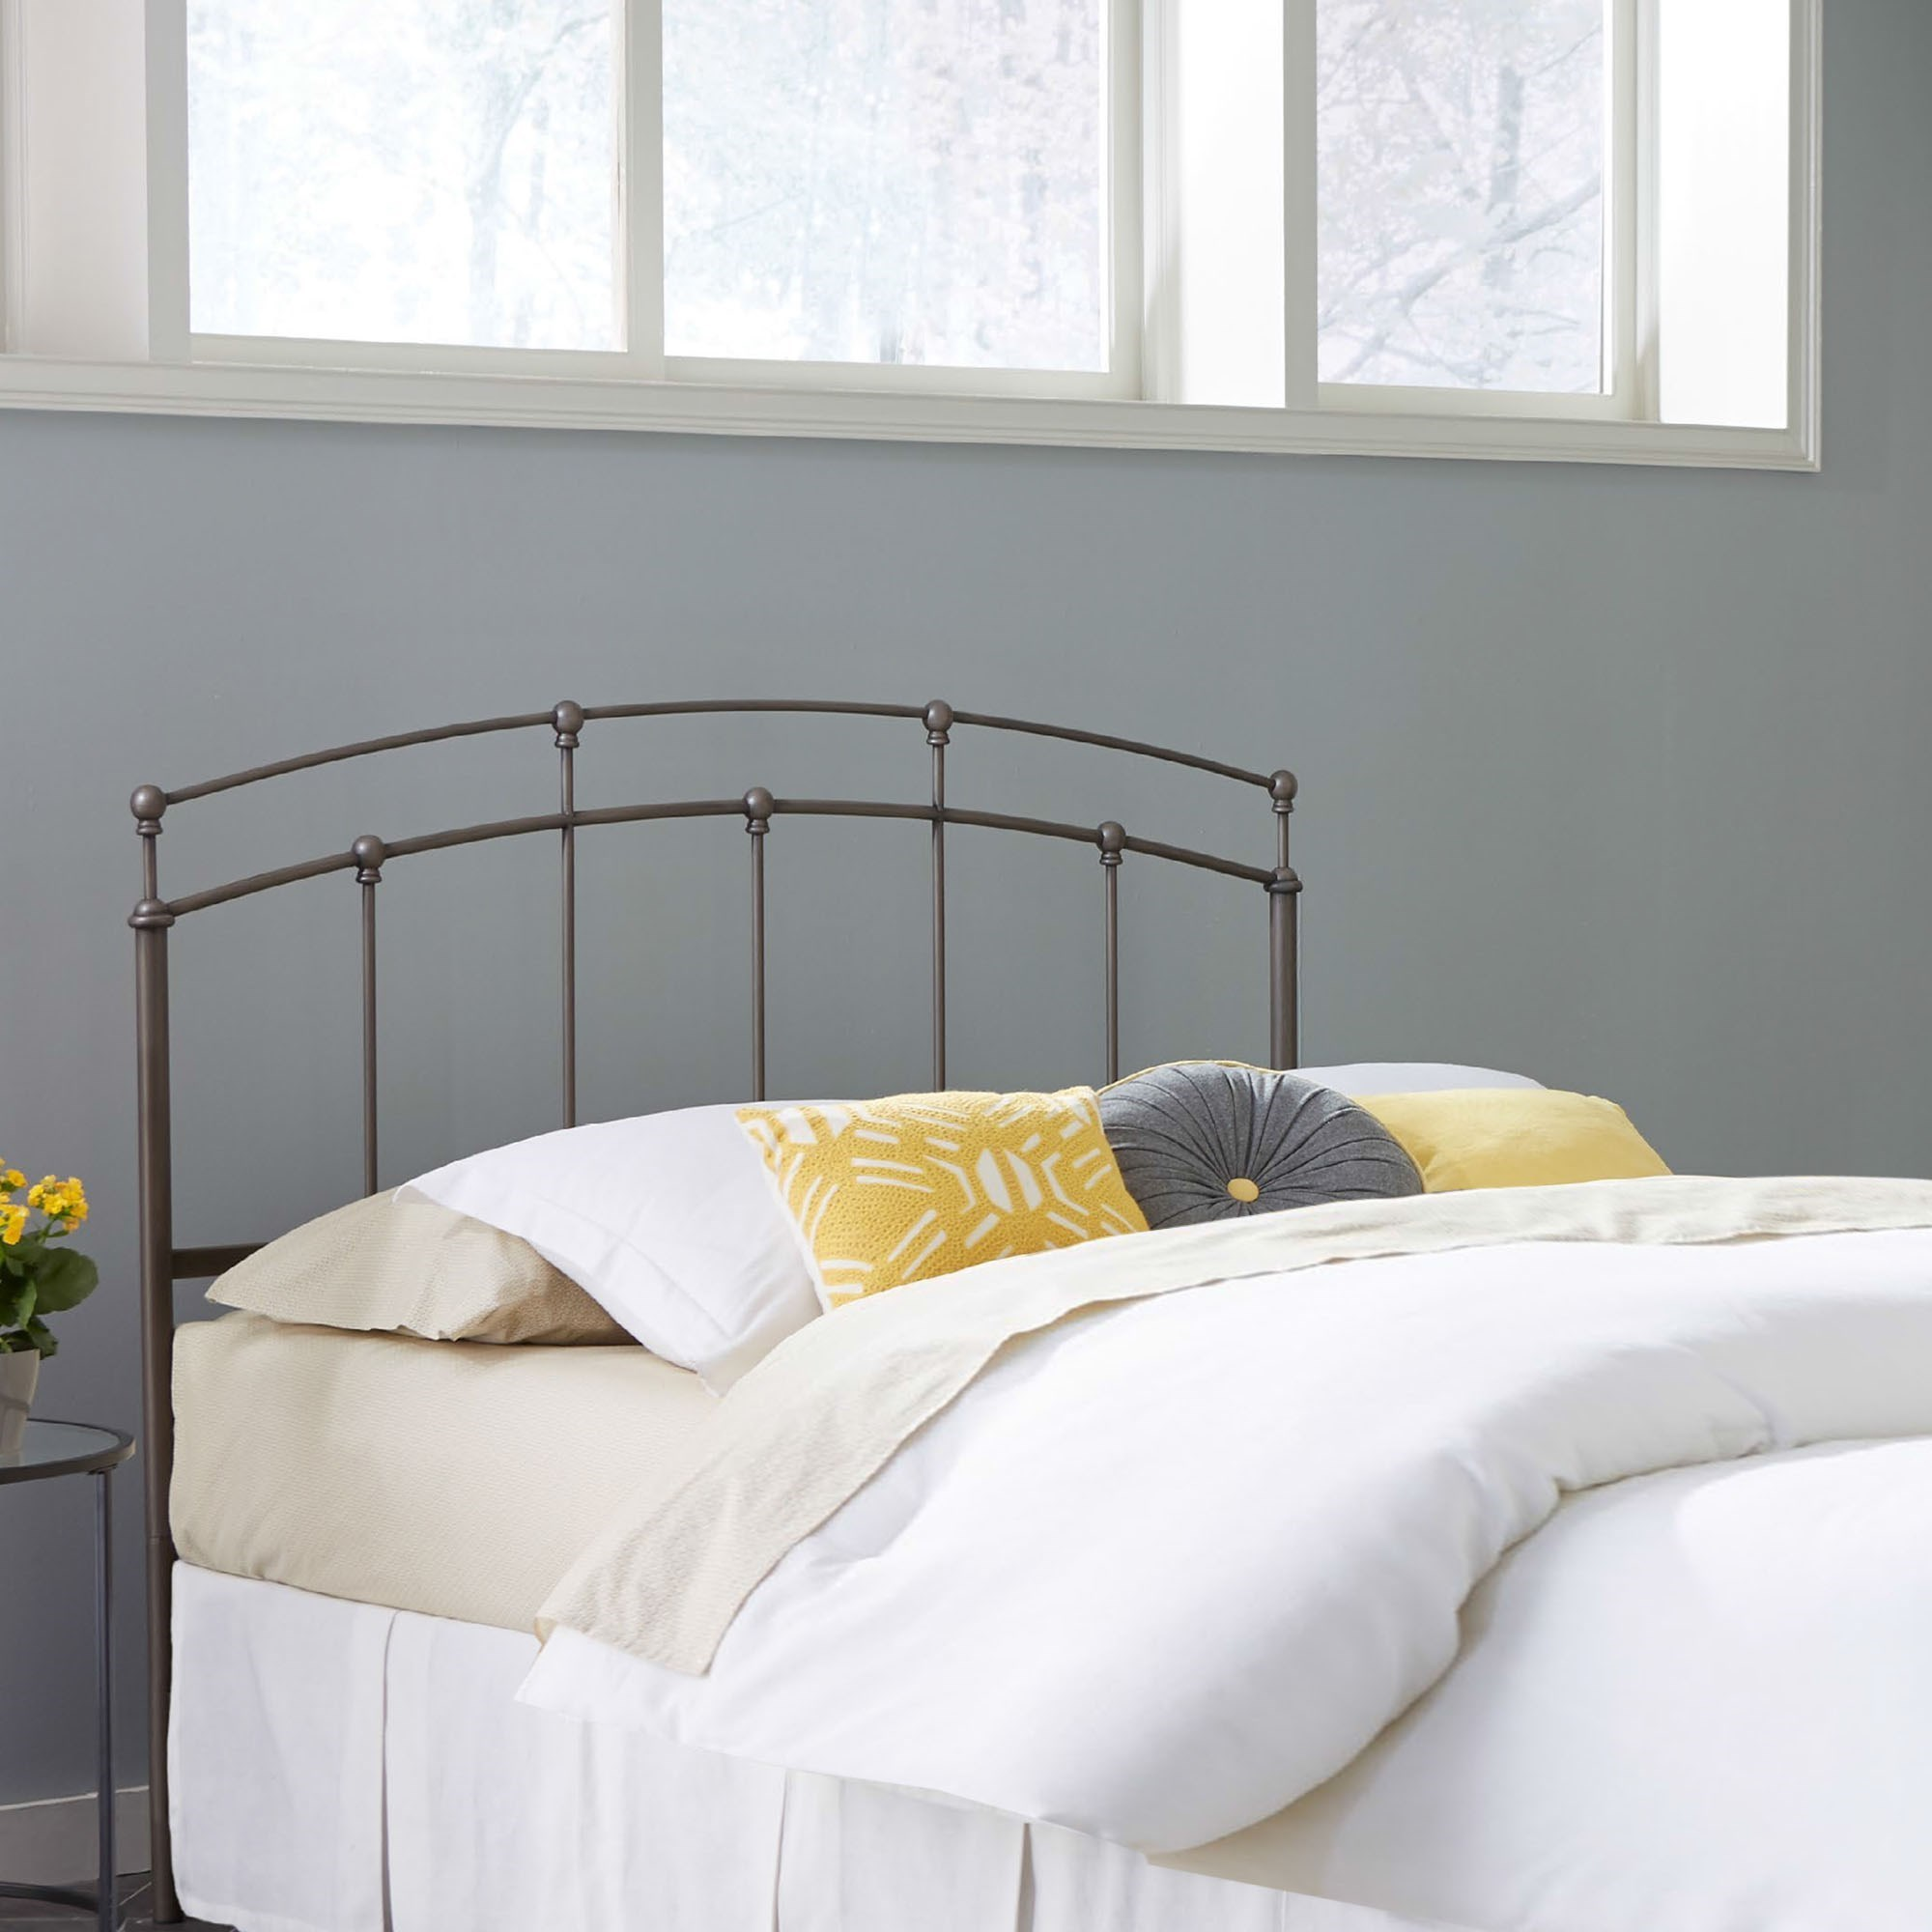 Becker Furniture Burnsville By Fashion Bed Group Metal Beds Queen Fenton  Duo Panel